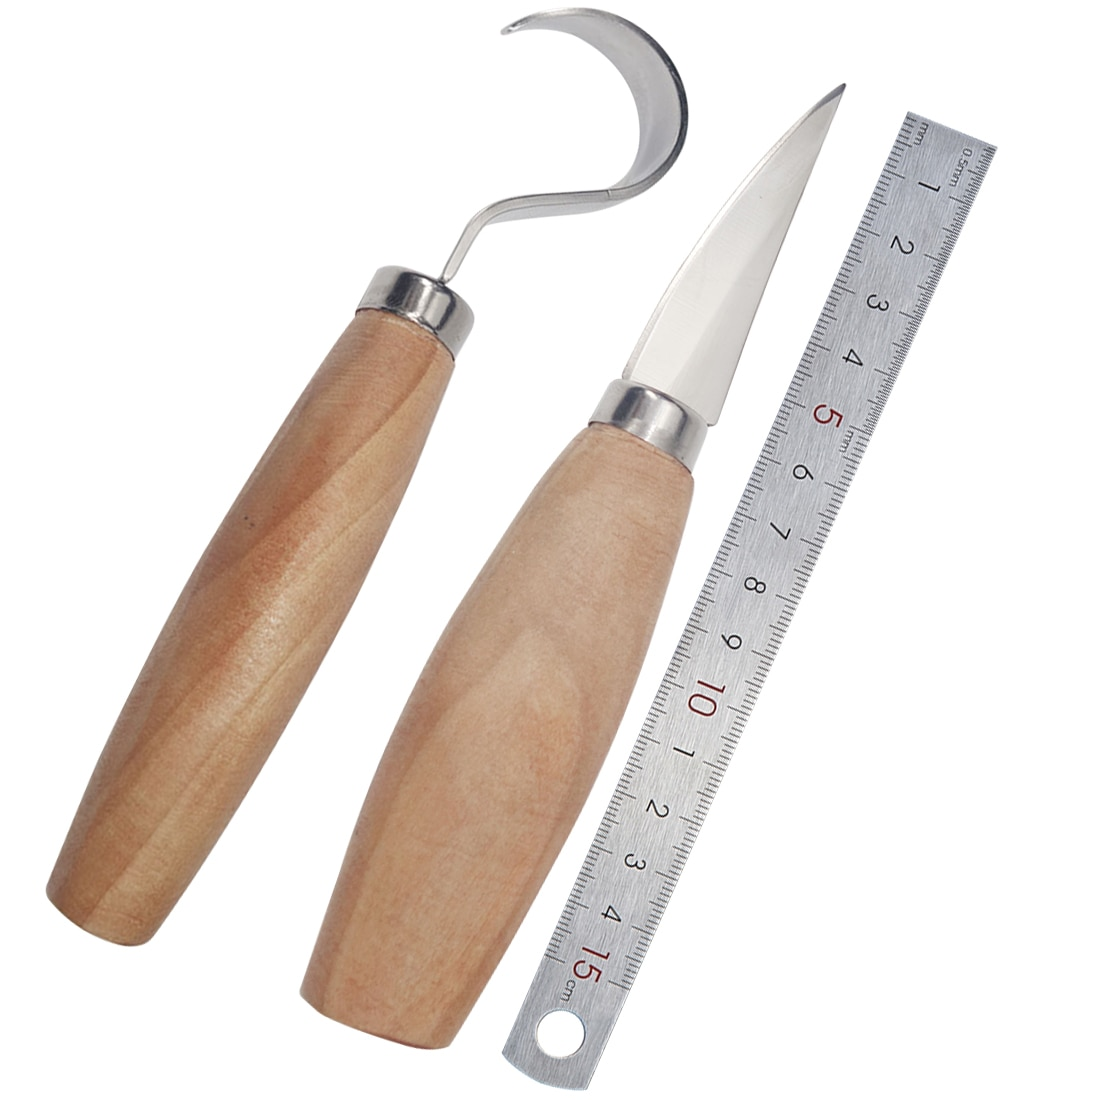 Фото - Woodcut Tools Kit 2PCS/Set Stainless Steel Woodcarving Cutter Woodwork Sculptural DIY Wood Handle Spoon Carving Knife chisel woodworking cutter hand tool set wood carving knife diy peeling woodcarving sculptural spoon carving cutter carving knife